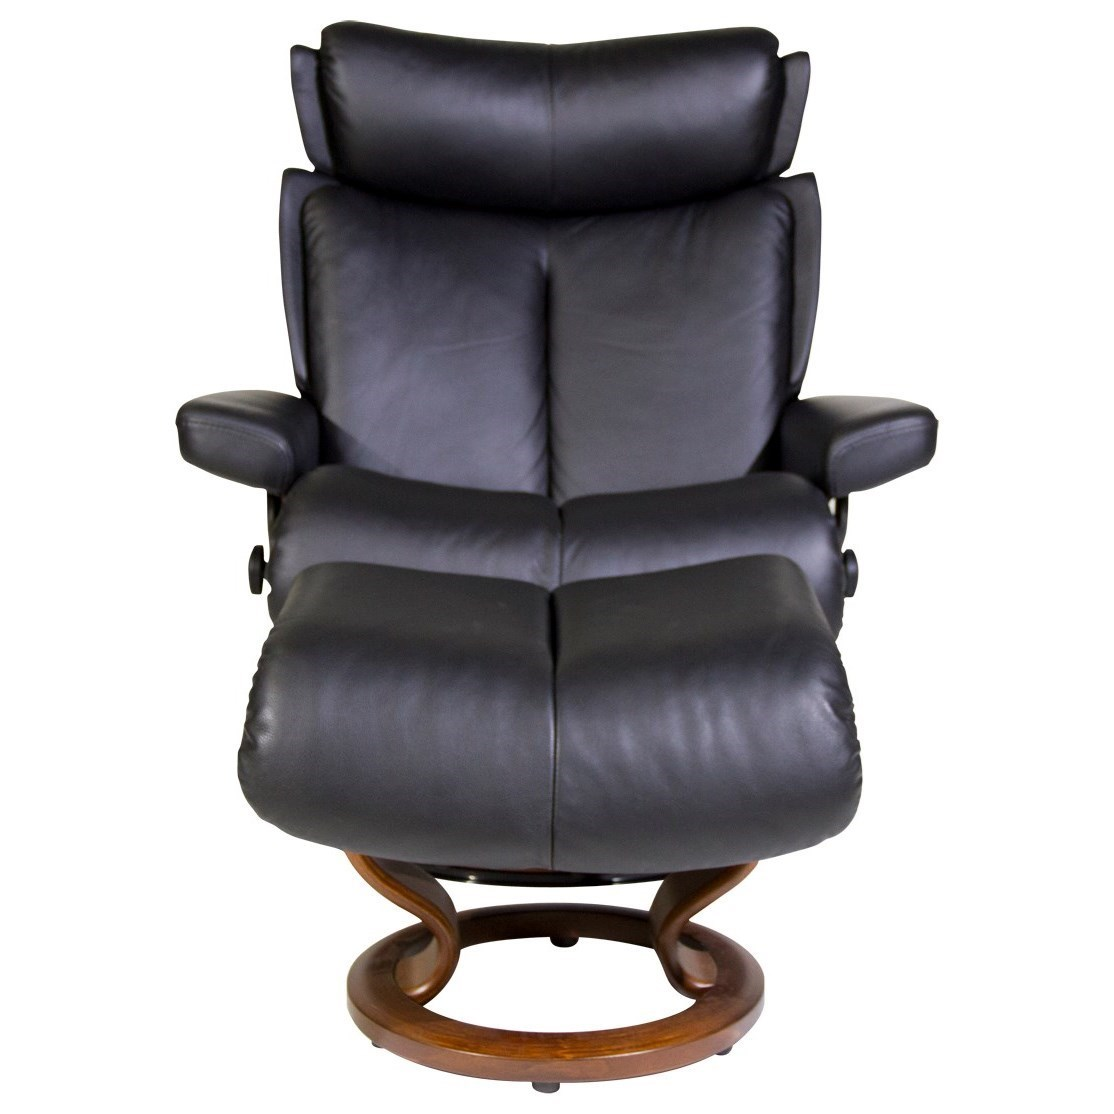 Stressless by Ekornes Stressless Recliners Magic Large Recliner and Ottoman  sc 1 st  Hudsonu0027s Furniture & Stressless by Ekornes Stressless Recliners Magic Large Recliner ... islam-shia.org